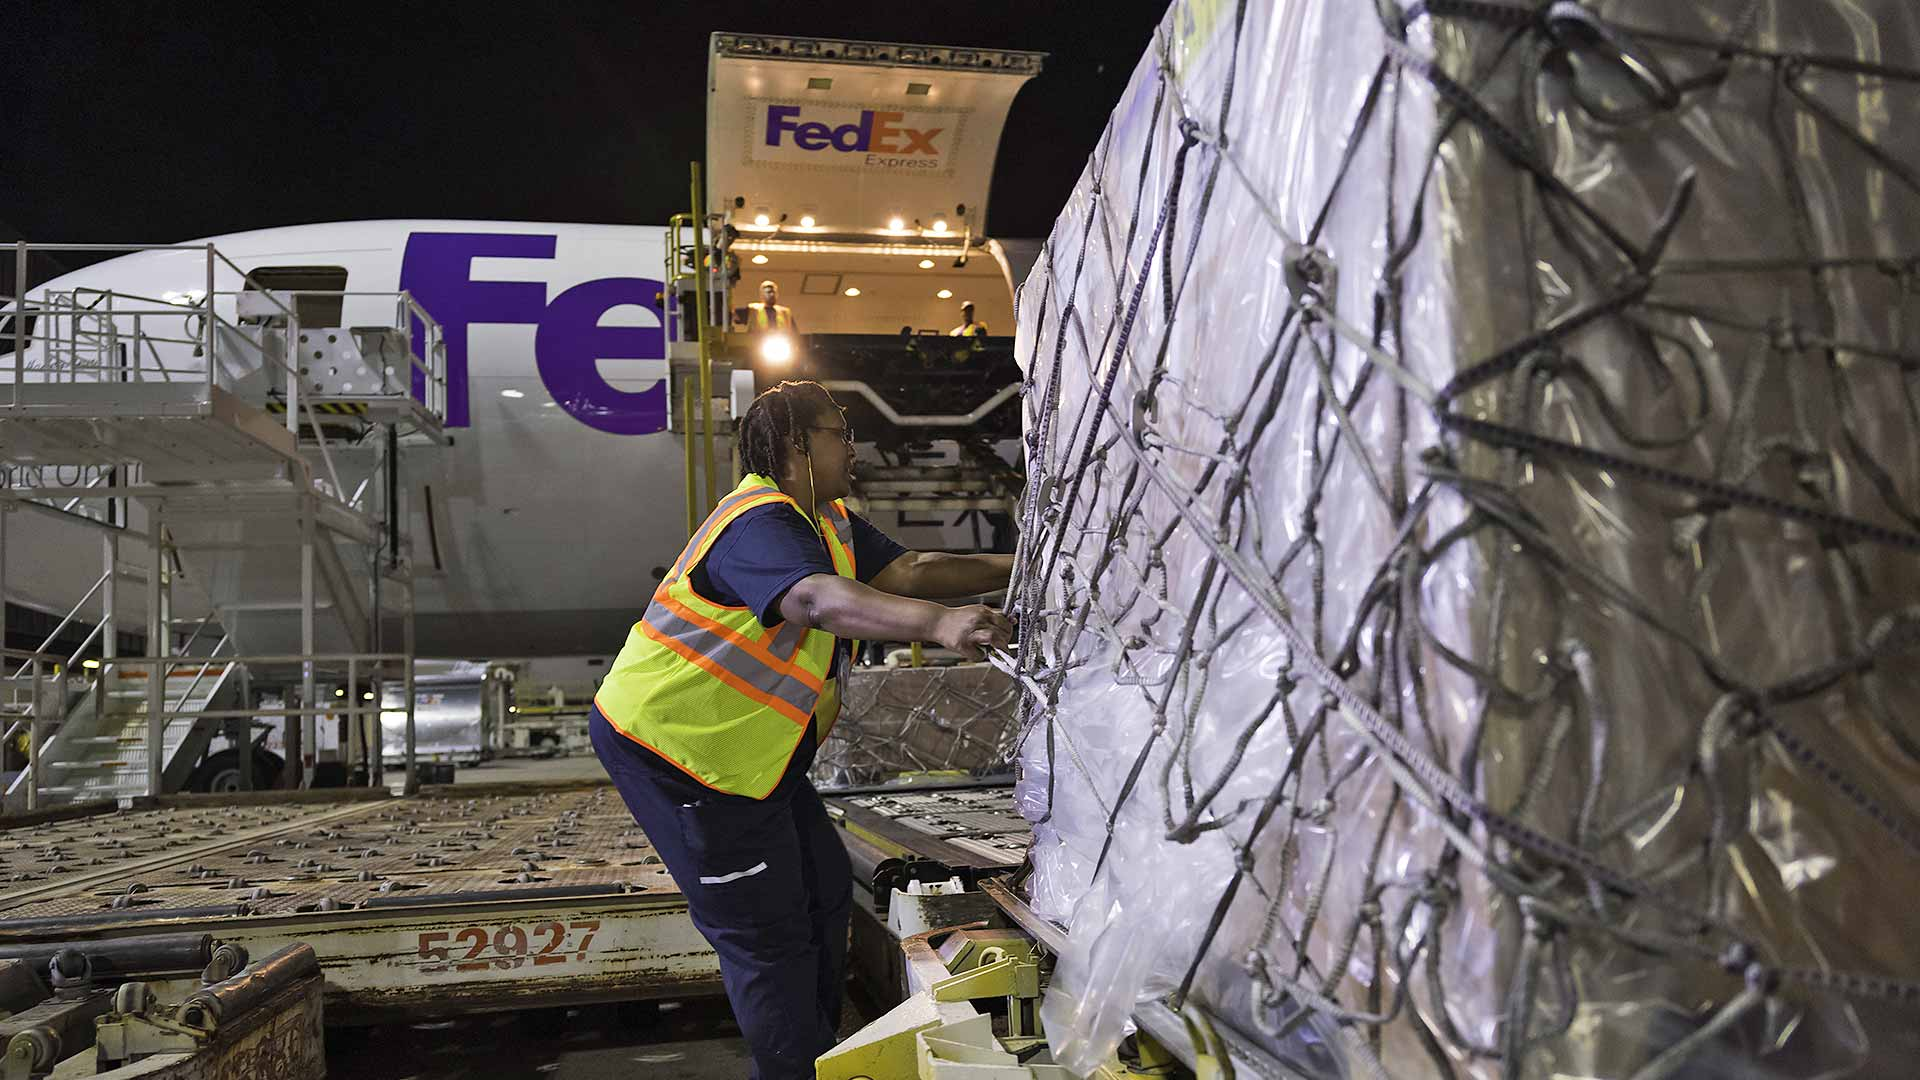 FedEx is stepping up to fight COVID-19 in many countries across the globe.